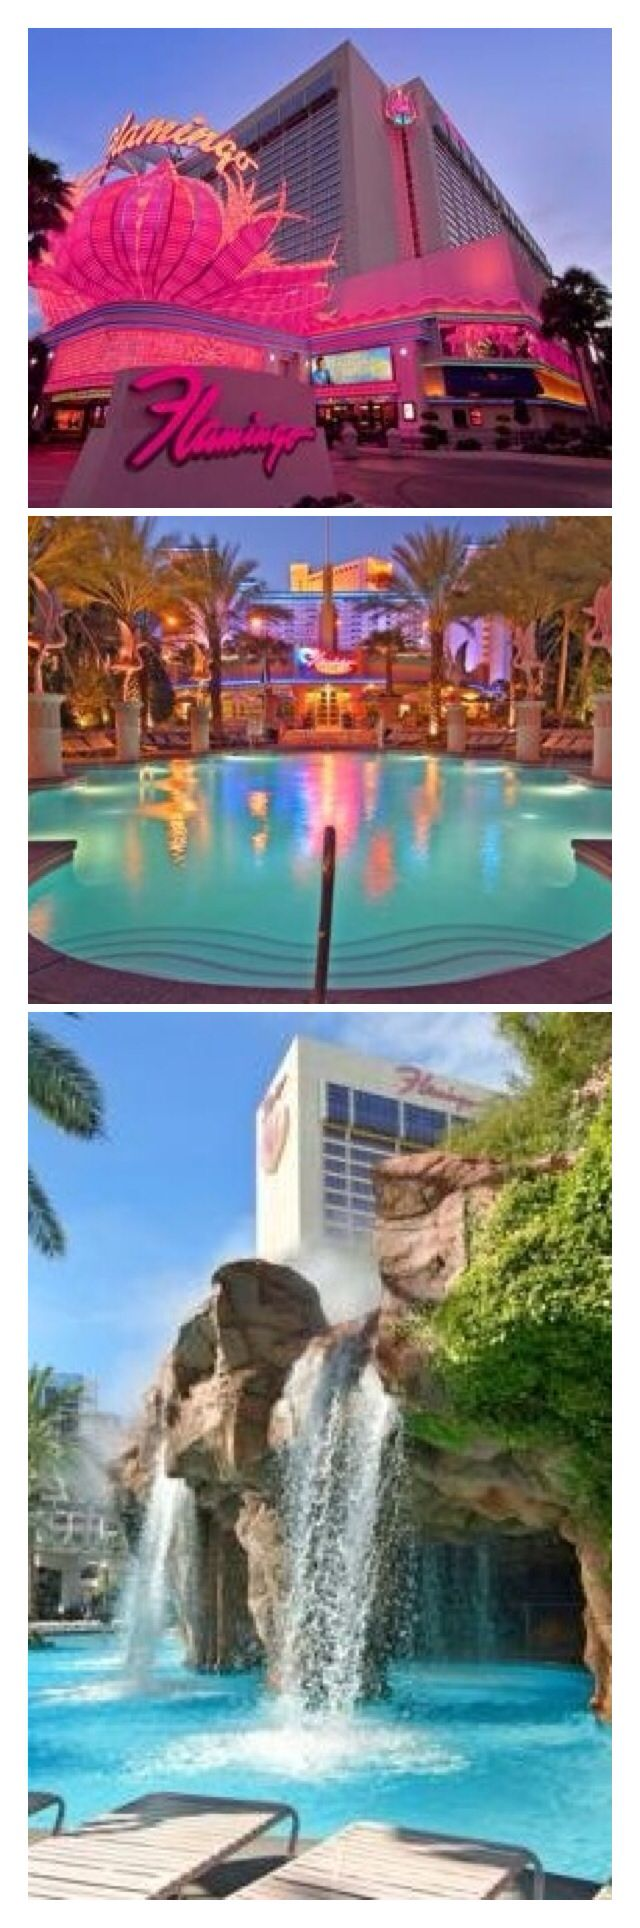 best 25+ flamingo hotel ideas on pinterest | eiffel tower las